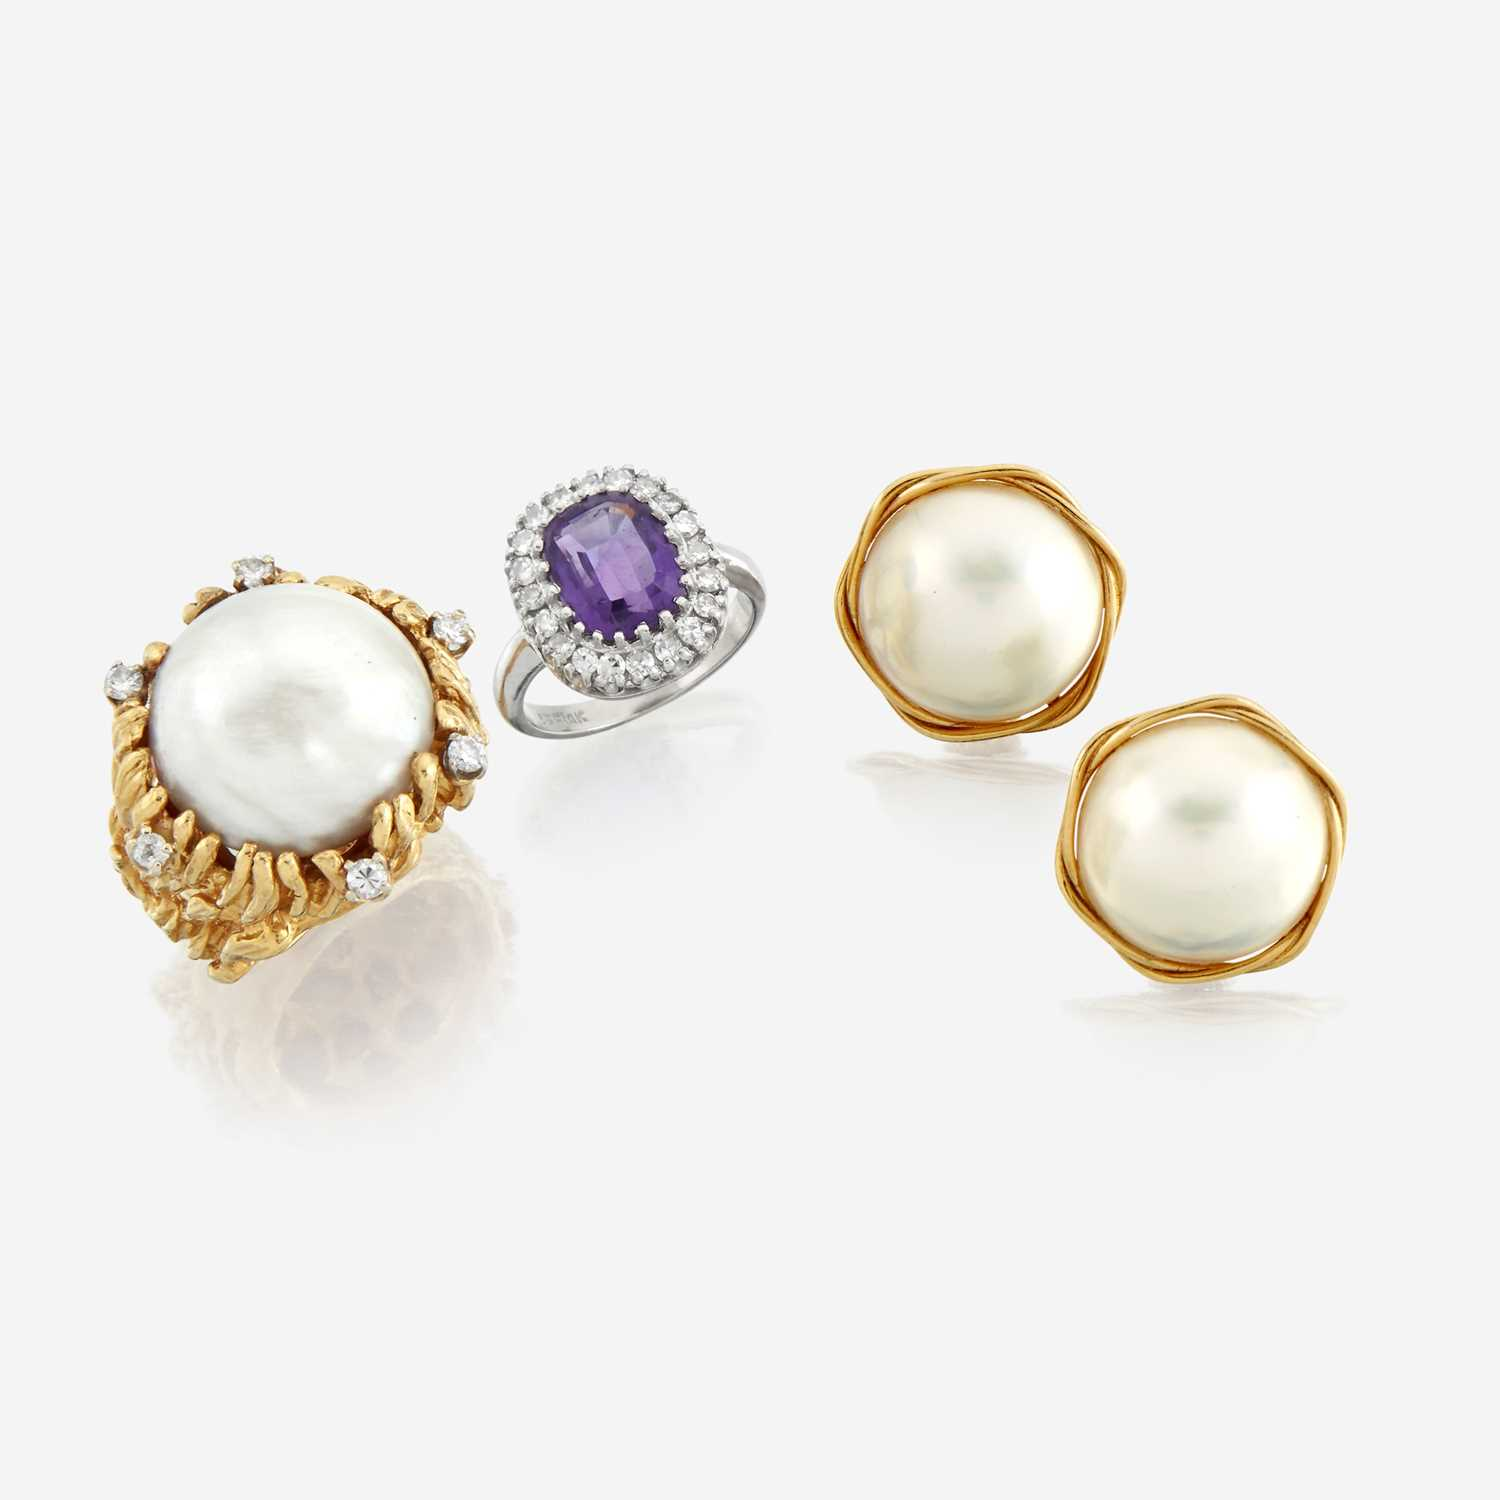 Lot 47 - A collection of fourteen karat gold and gem-set jewelry